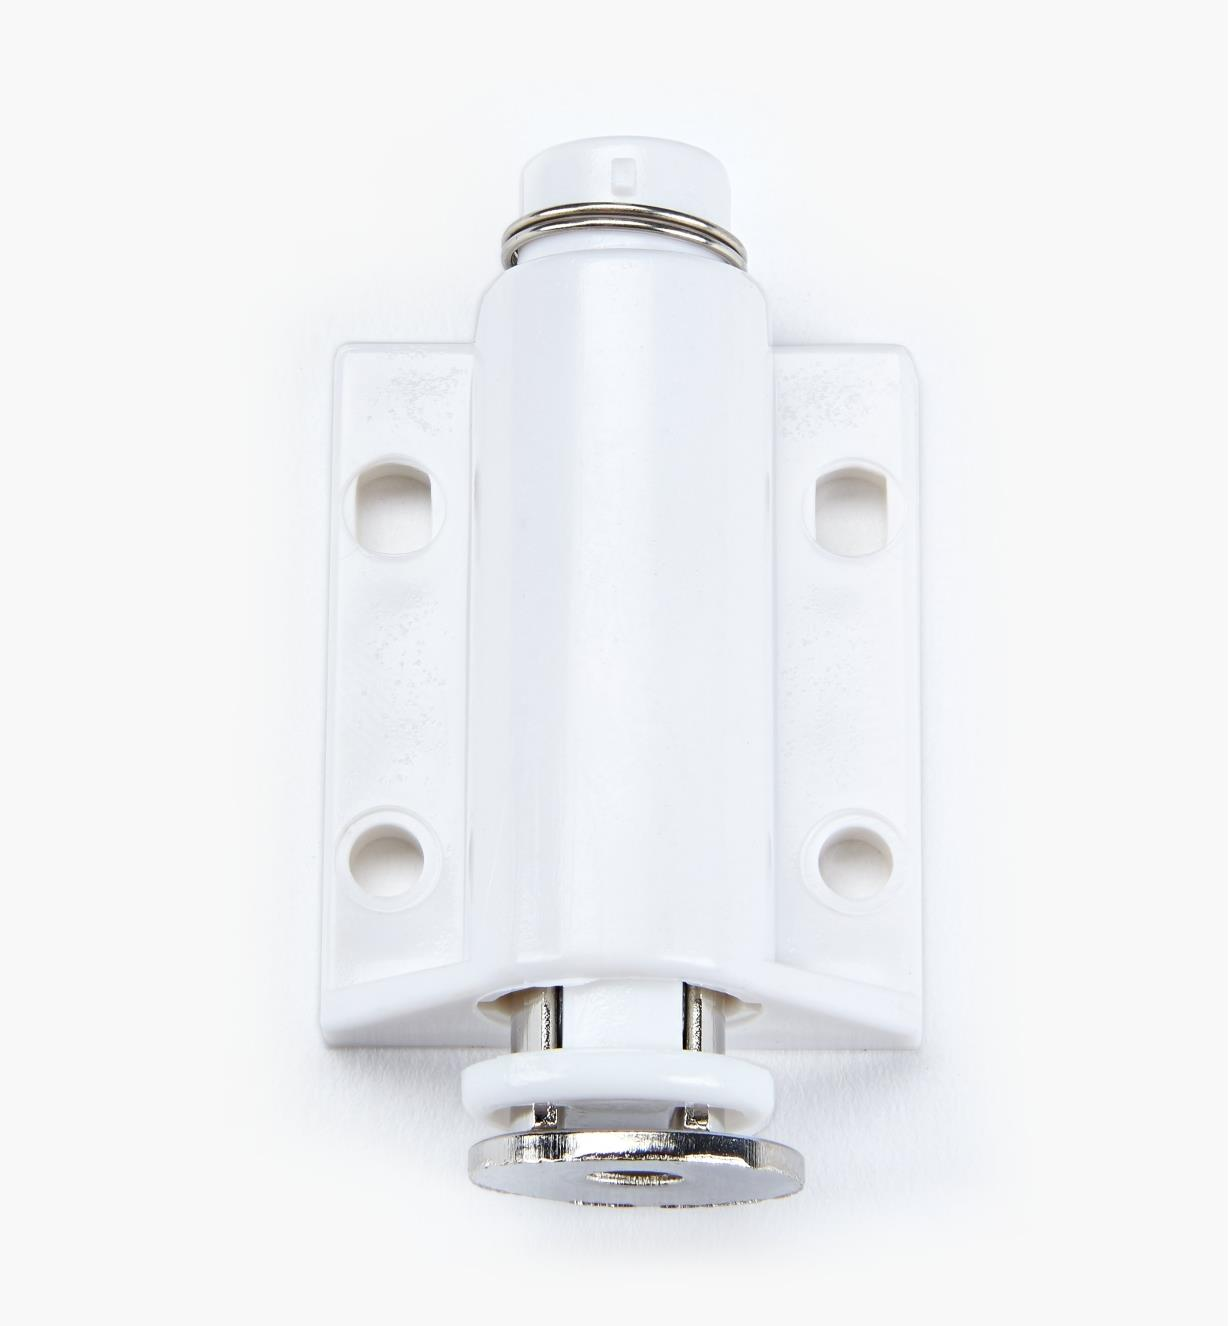 00W0205 - White Single Magnetic Latch, ea.